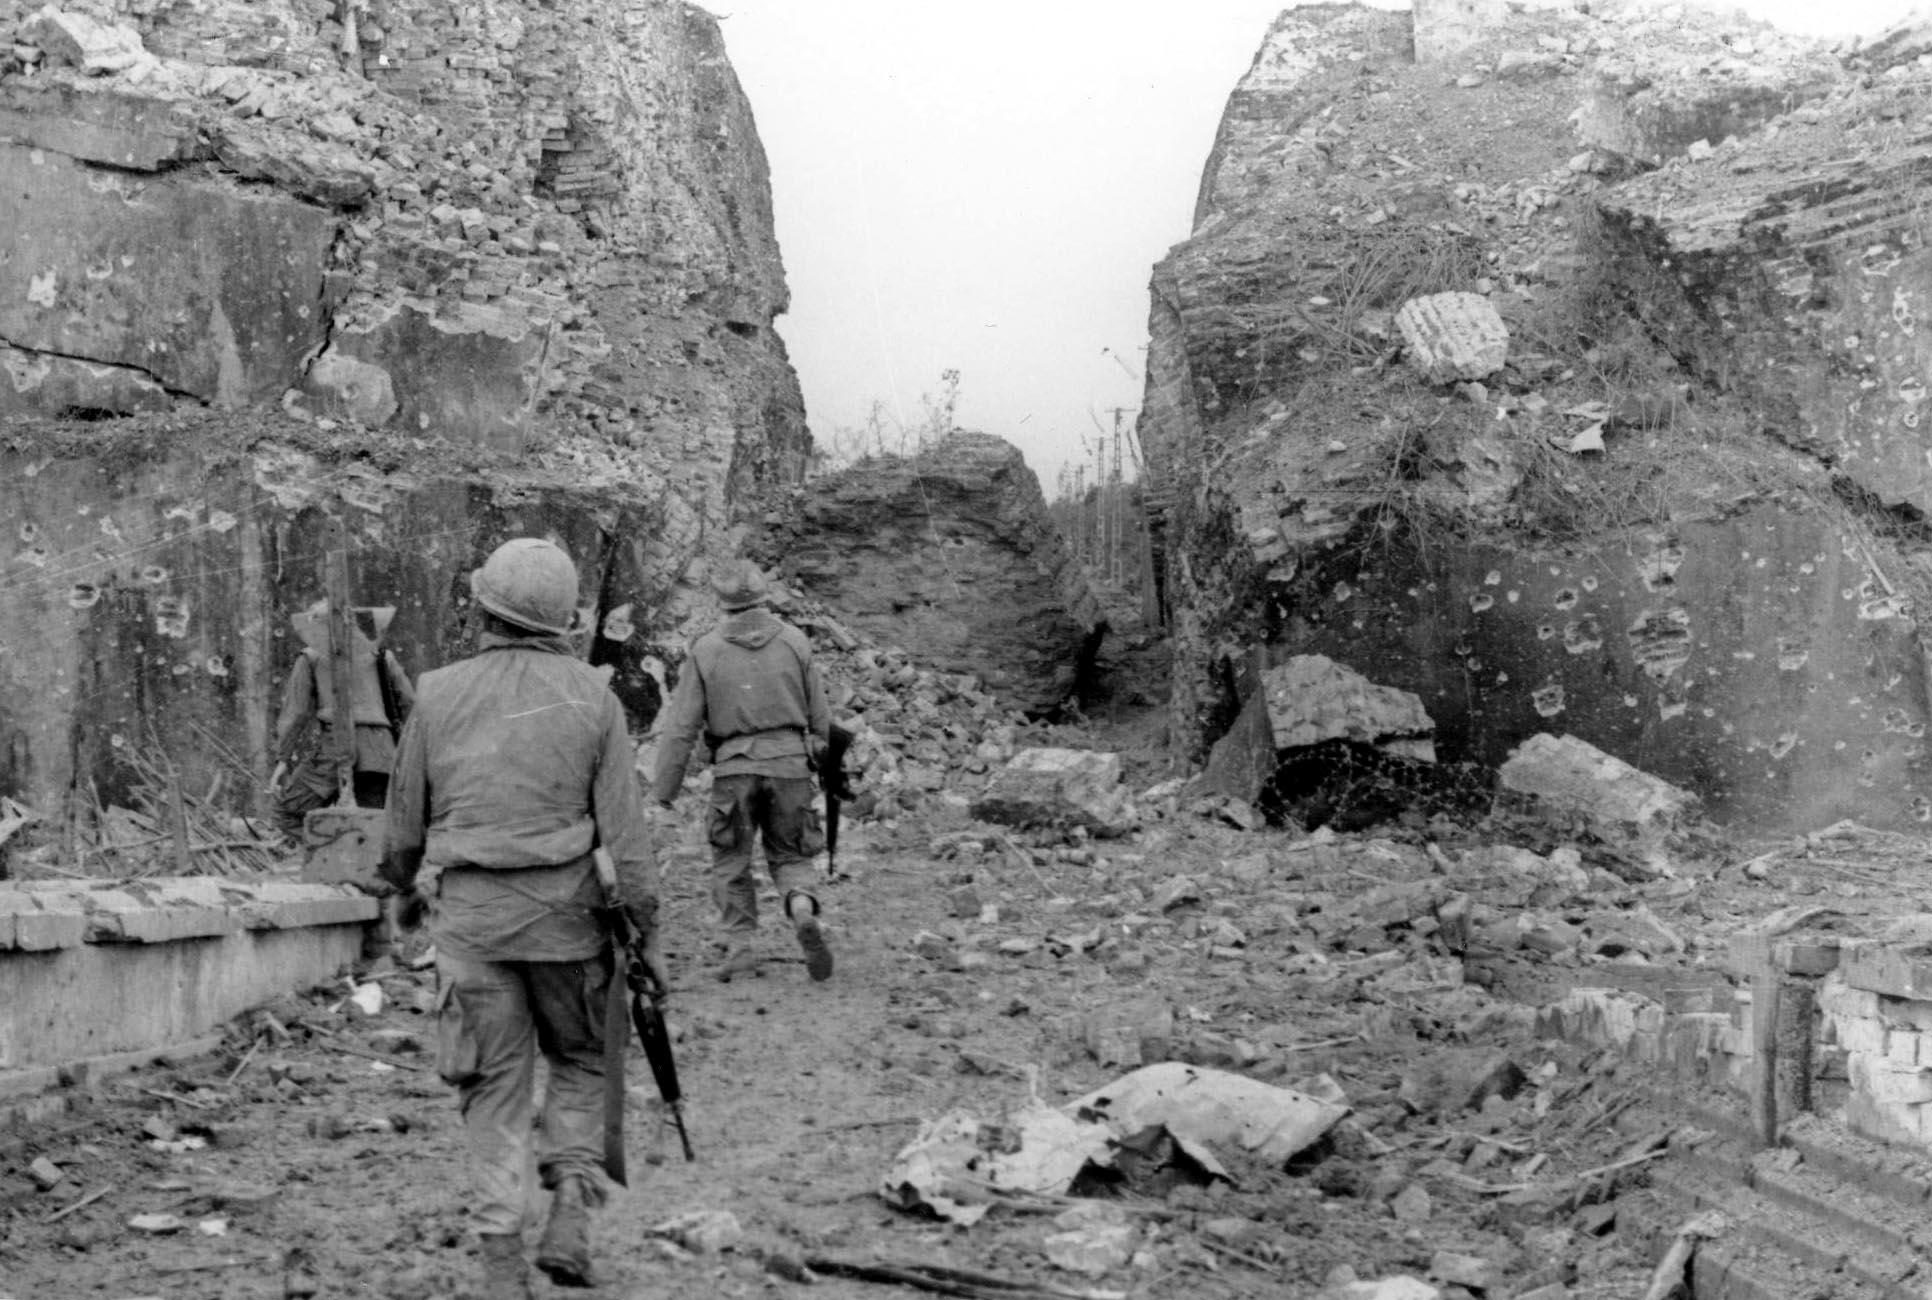 history of tet offensive On january 30, 1968, north vietnamese and viet cong troops launched the tet  offensive against south vietnamese and united states targets.